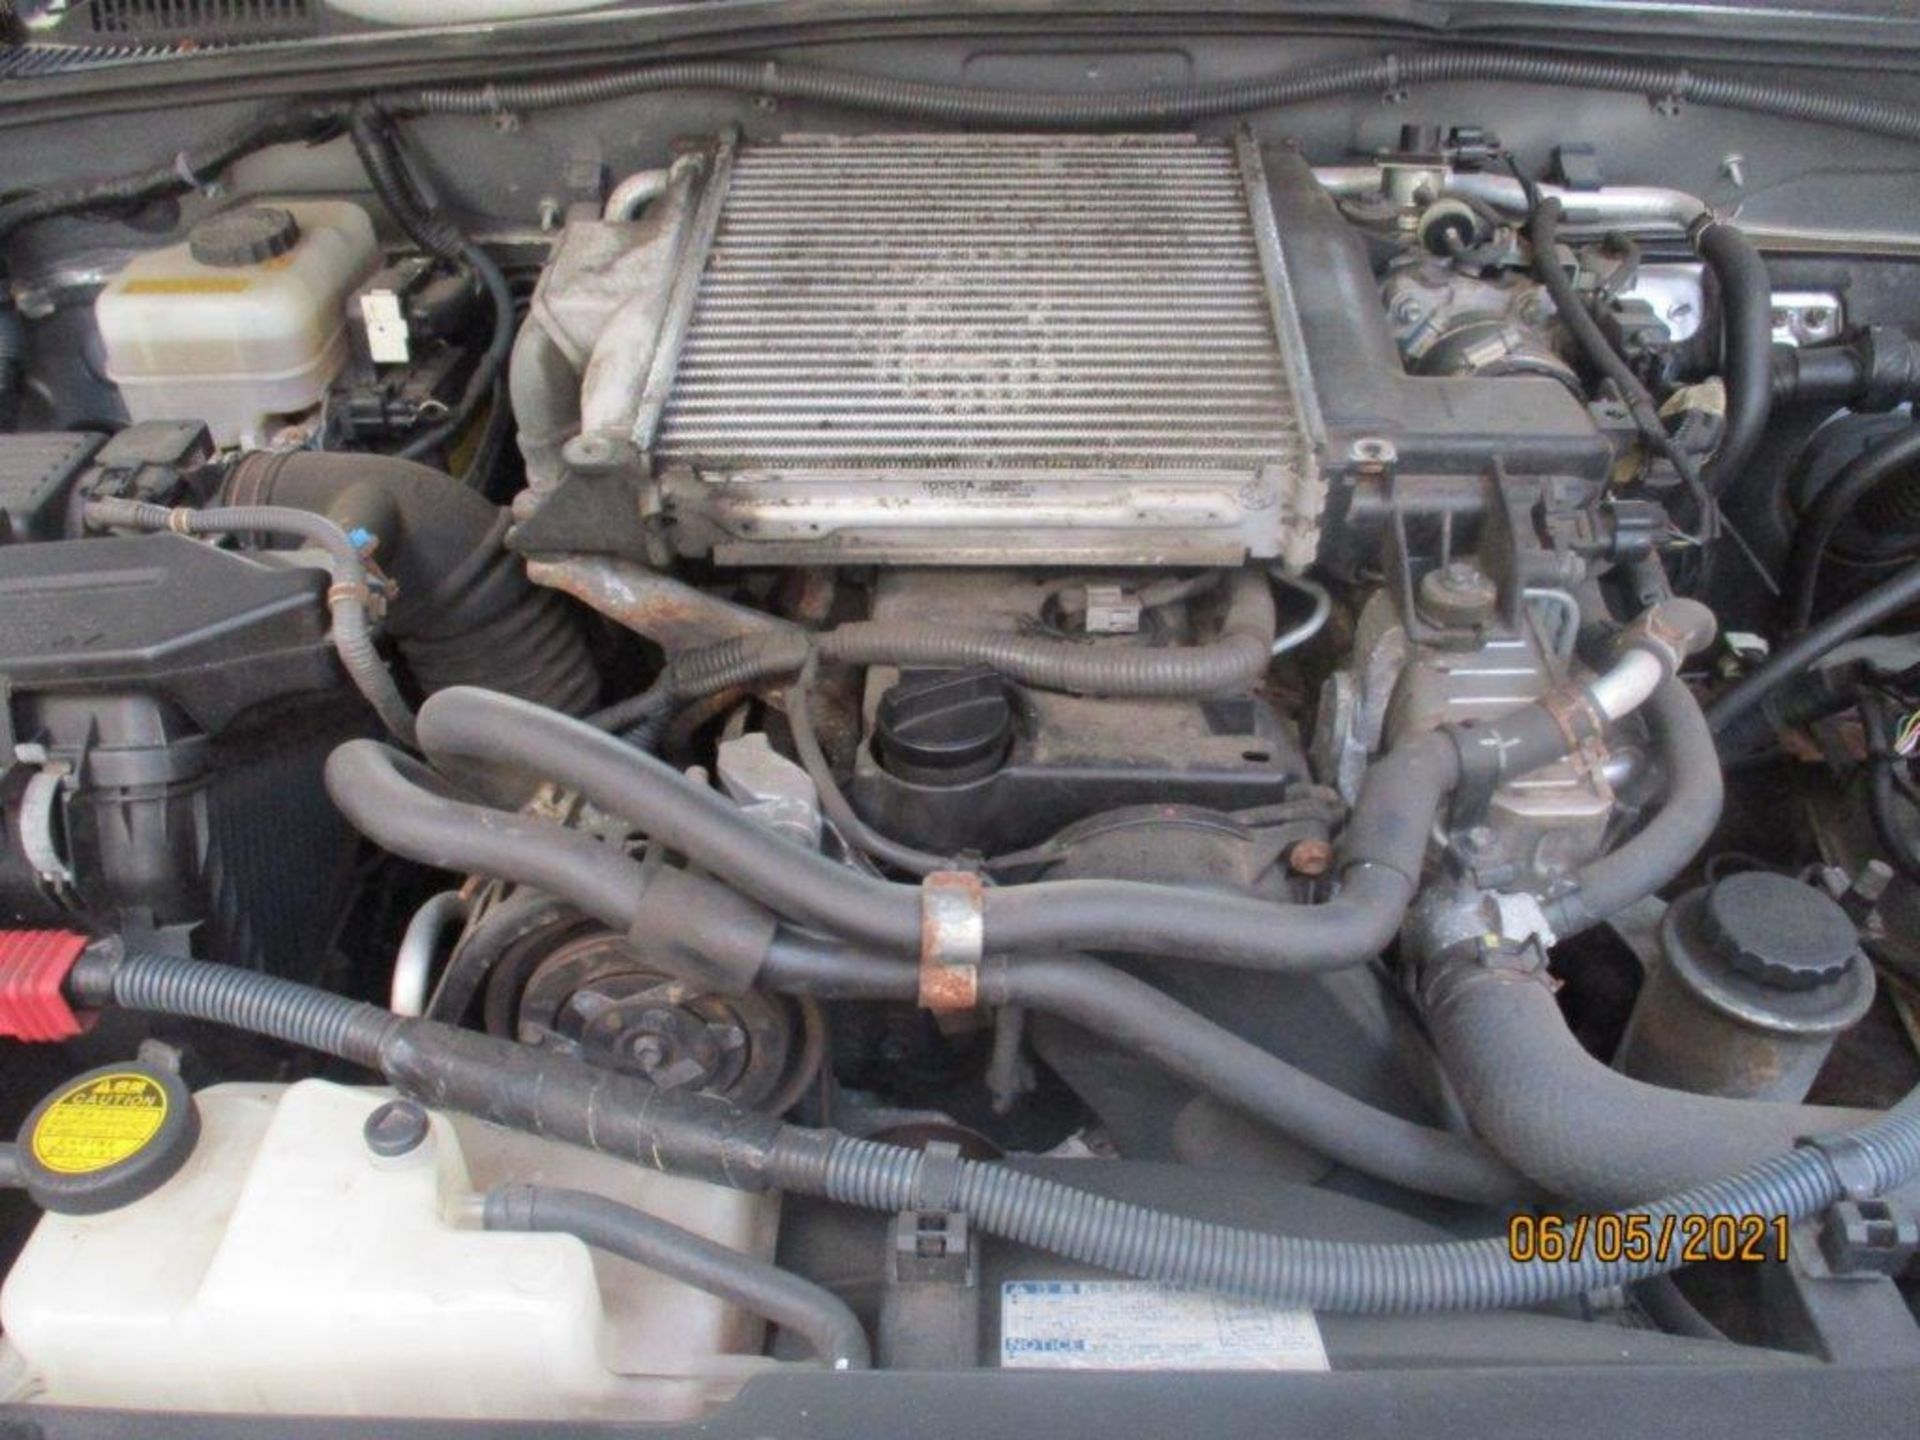 07 57 Toyota L/Cruiser LC4 D 4D - Image 10 of 32